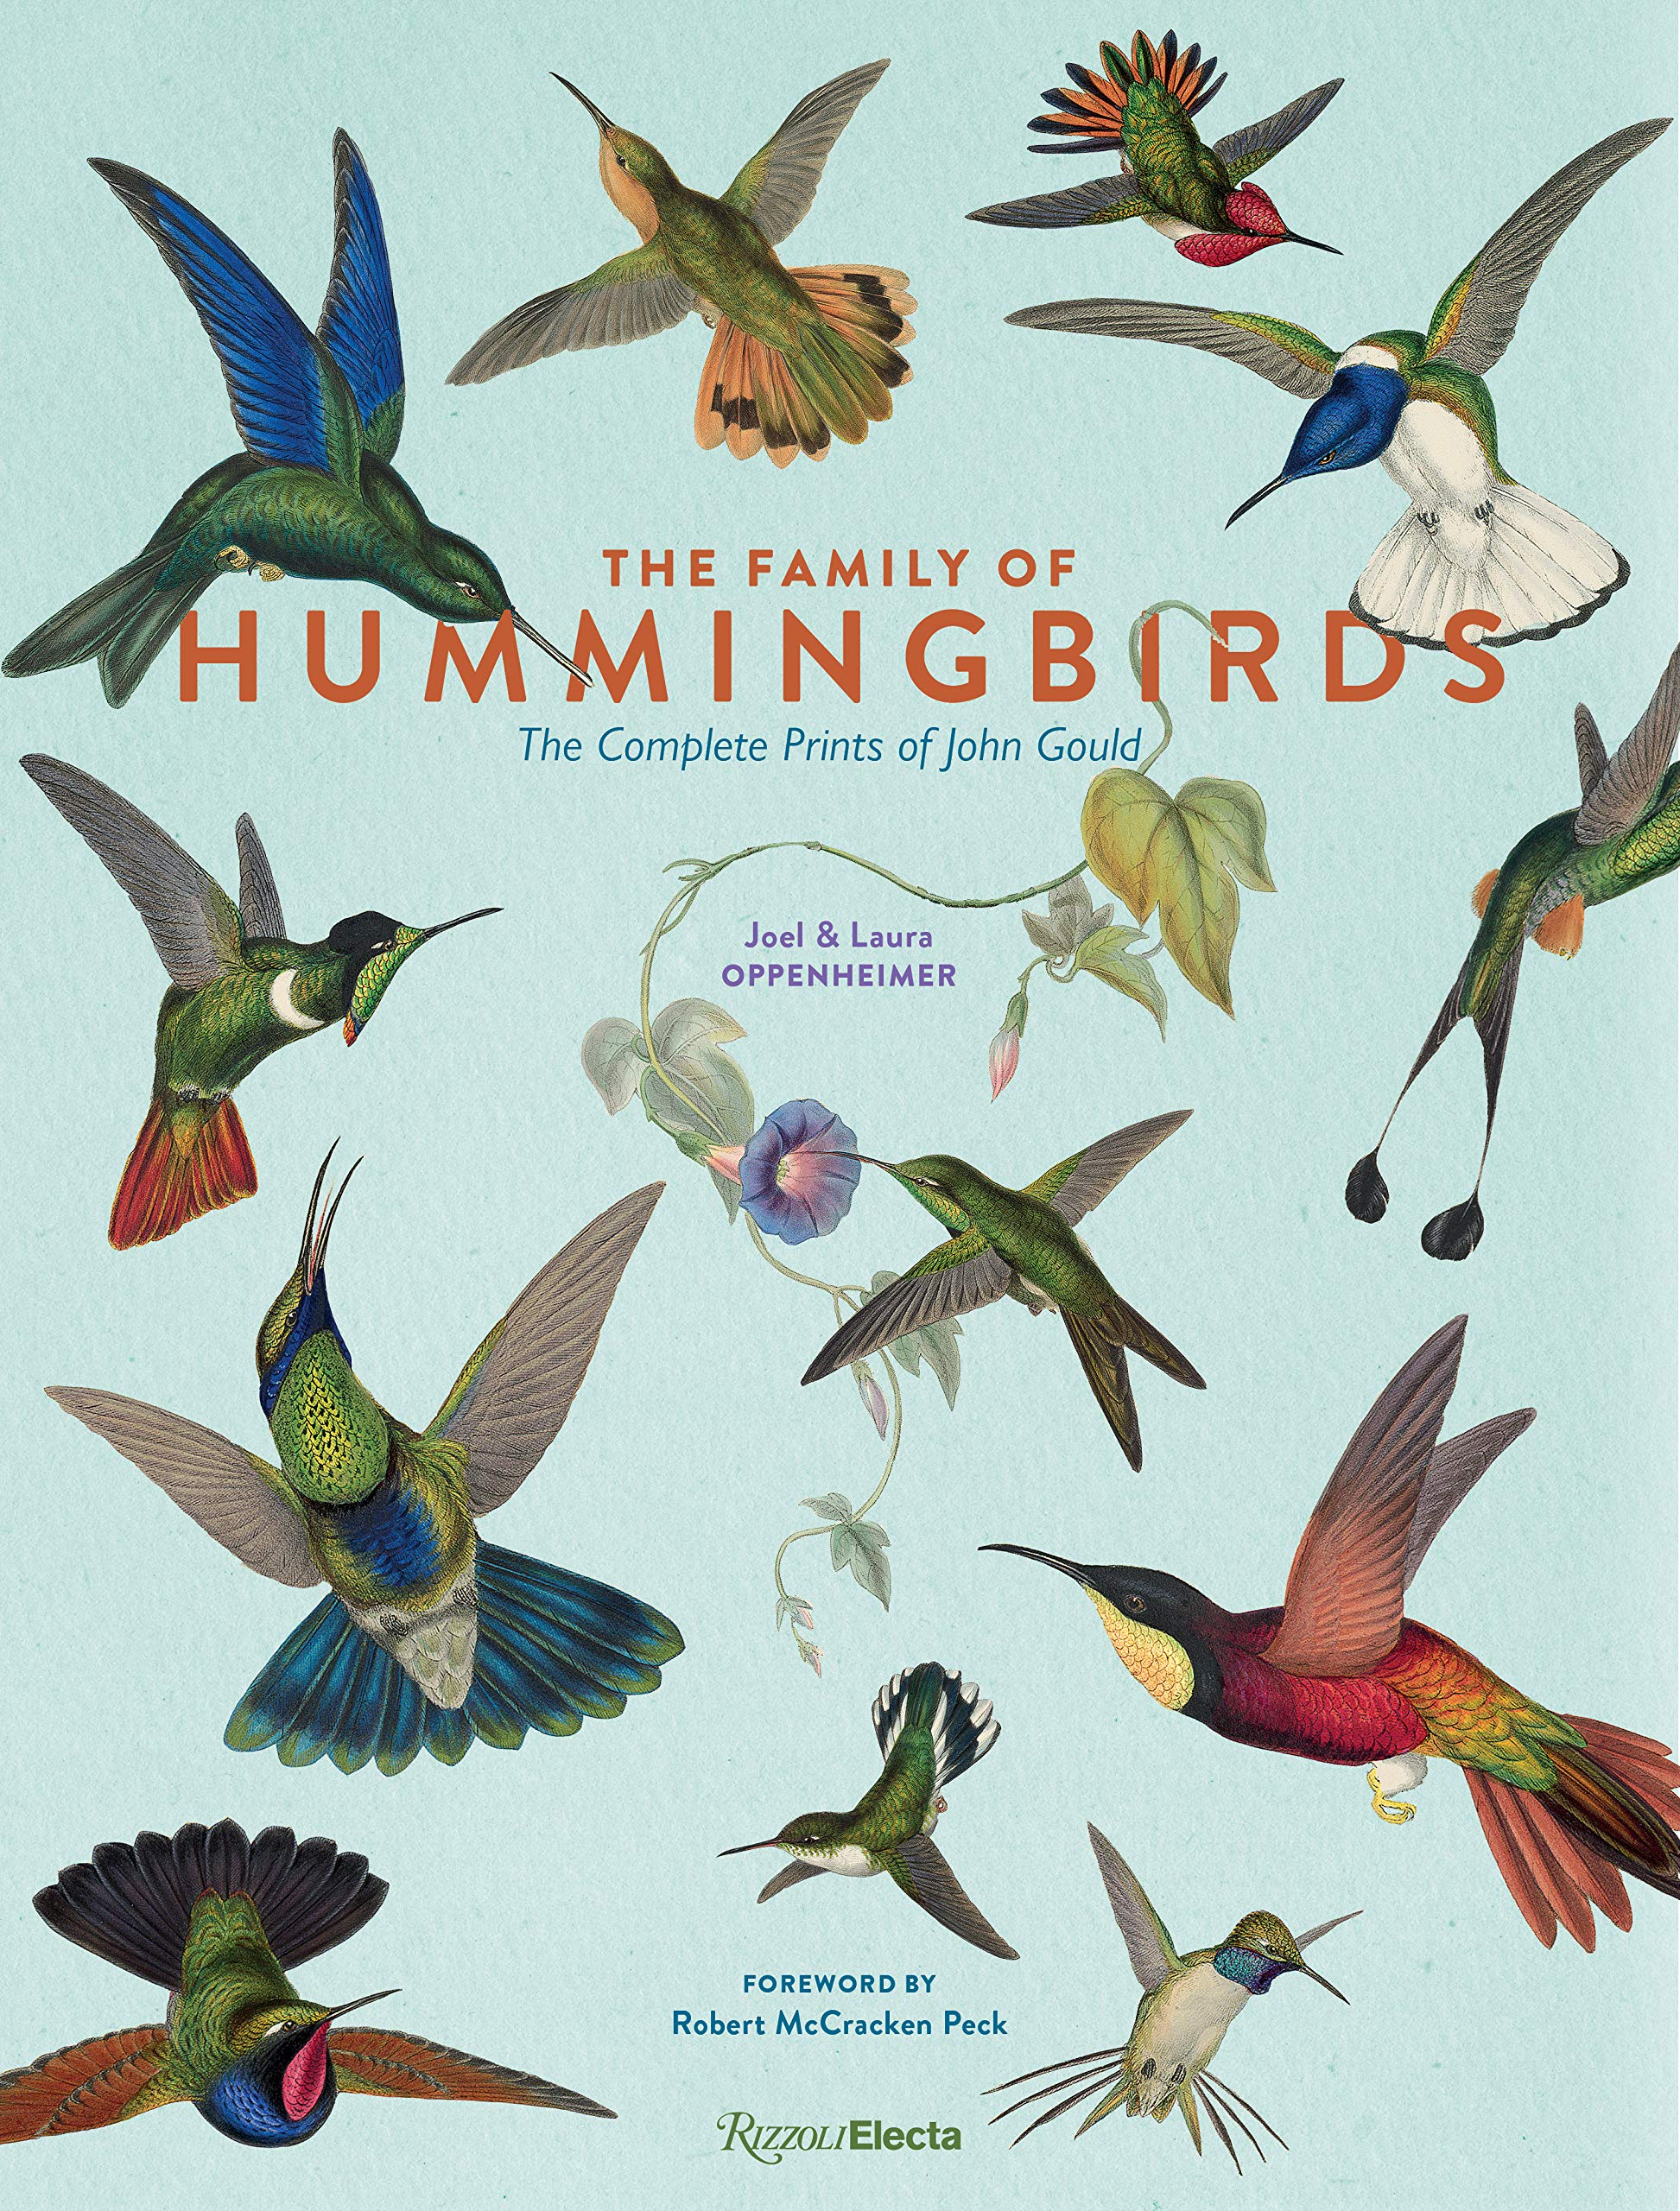 The Family of Hummingbirds: The Complete Prints of John Gould - CARLYLE AVENUE